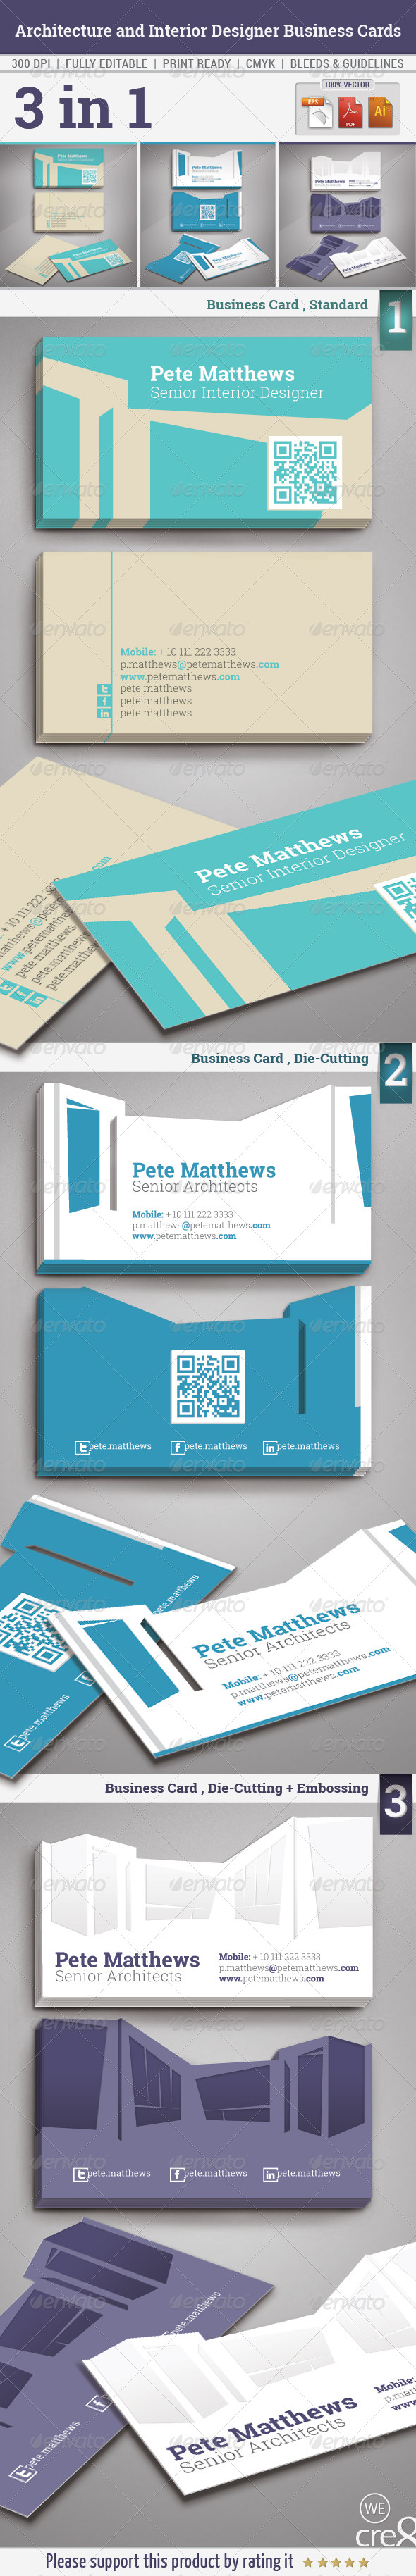 Architecture and Interior Designer Business Cards - Business Cards Print Templates